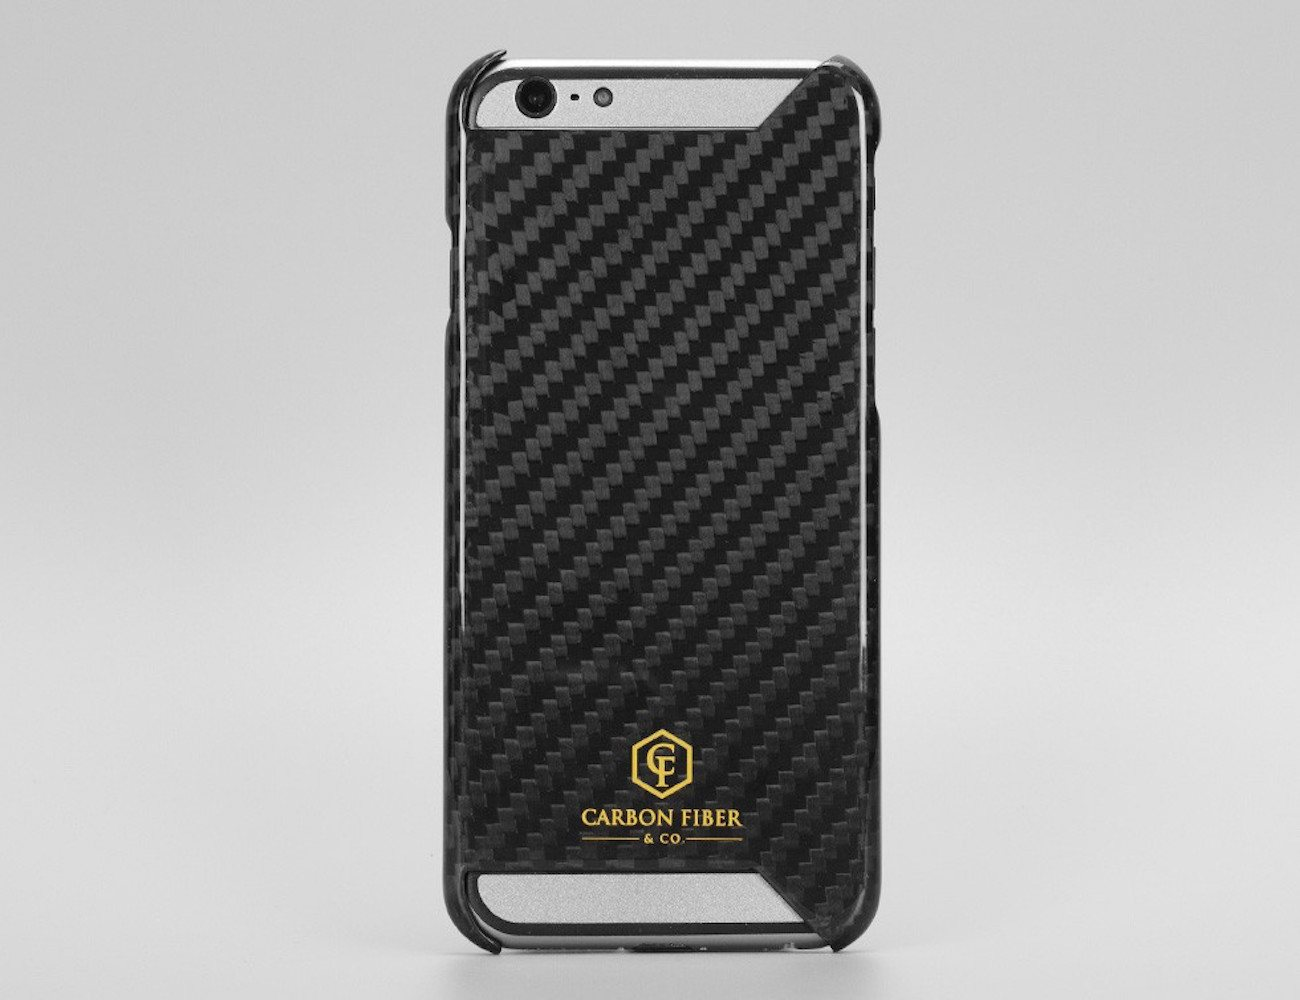 Carbon Fiber Iphone Case >> Carbon Fiber Iphone 6 Case By Carbon Fiber Co